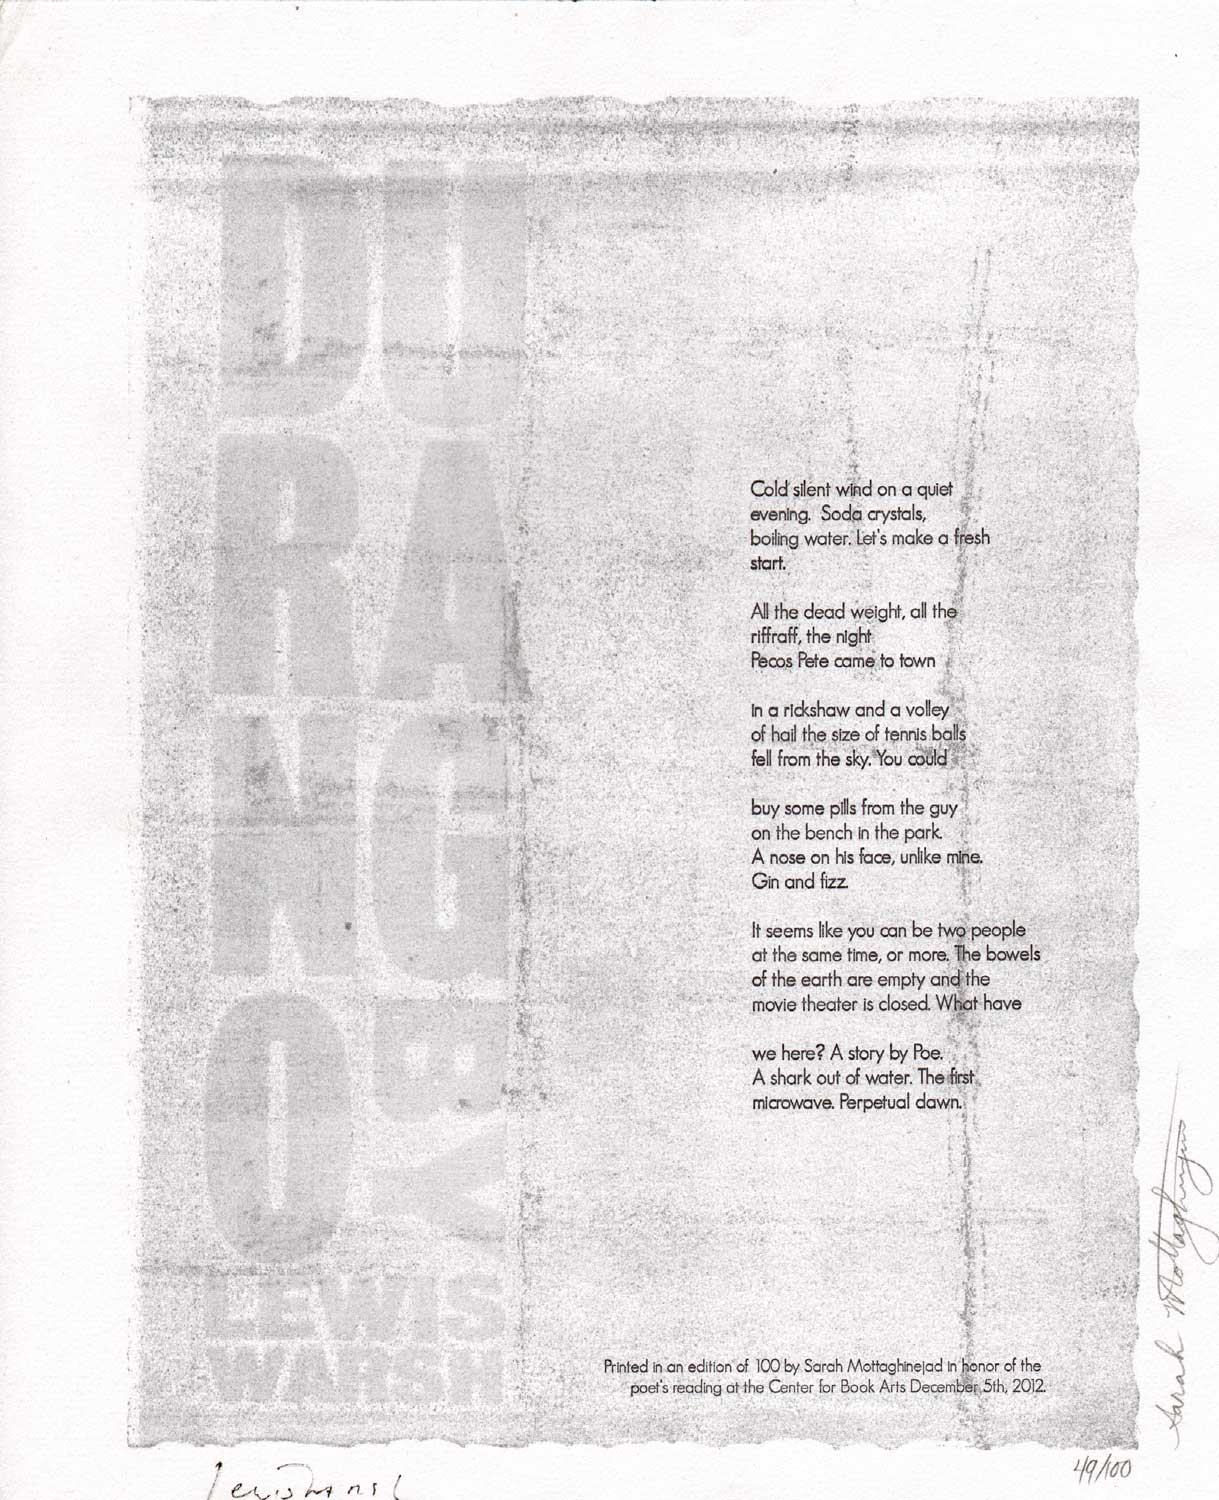 image of broadside by Lewis Warsh // Cold silent wind on a quiet / evening. Soda crystals, / boiling water. Let's make a fresh / start. // All the dead weight, all the / riffraff, the night / Pecos Pete came to town // In a rickshaw and a volley / of hail the size of tennis balls / fell from the sky. You could // buy some pills from the guy / on the bench in the park. // A nose on his face, unlike mine. Gin and fizz. // It seems like you can be two people / at the same time, or more. The bowels / of the earth are empty and the / movie theater is closed. What have // we here? A story by Poe. / A shark out of water. The first / microwave. Perpetual dawn. // Printed in an edition of 100 by Sarah Mottaghinejad in honor of the poet's reading at the Center for Book Arts December 5th, 2012. // 49/100